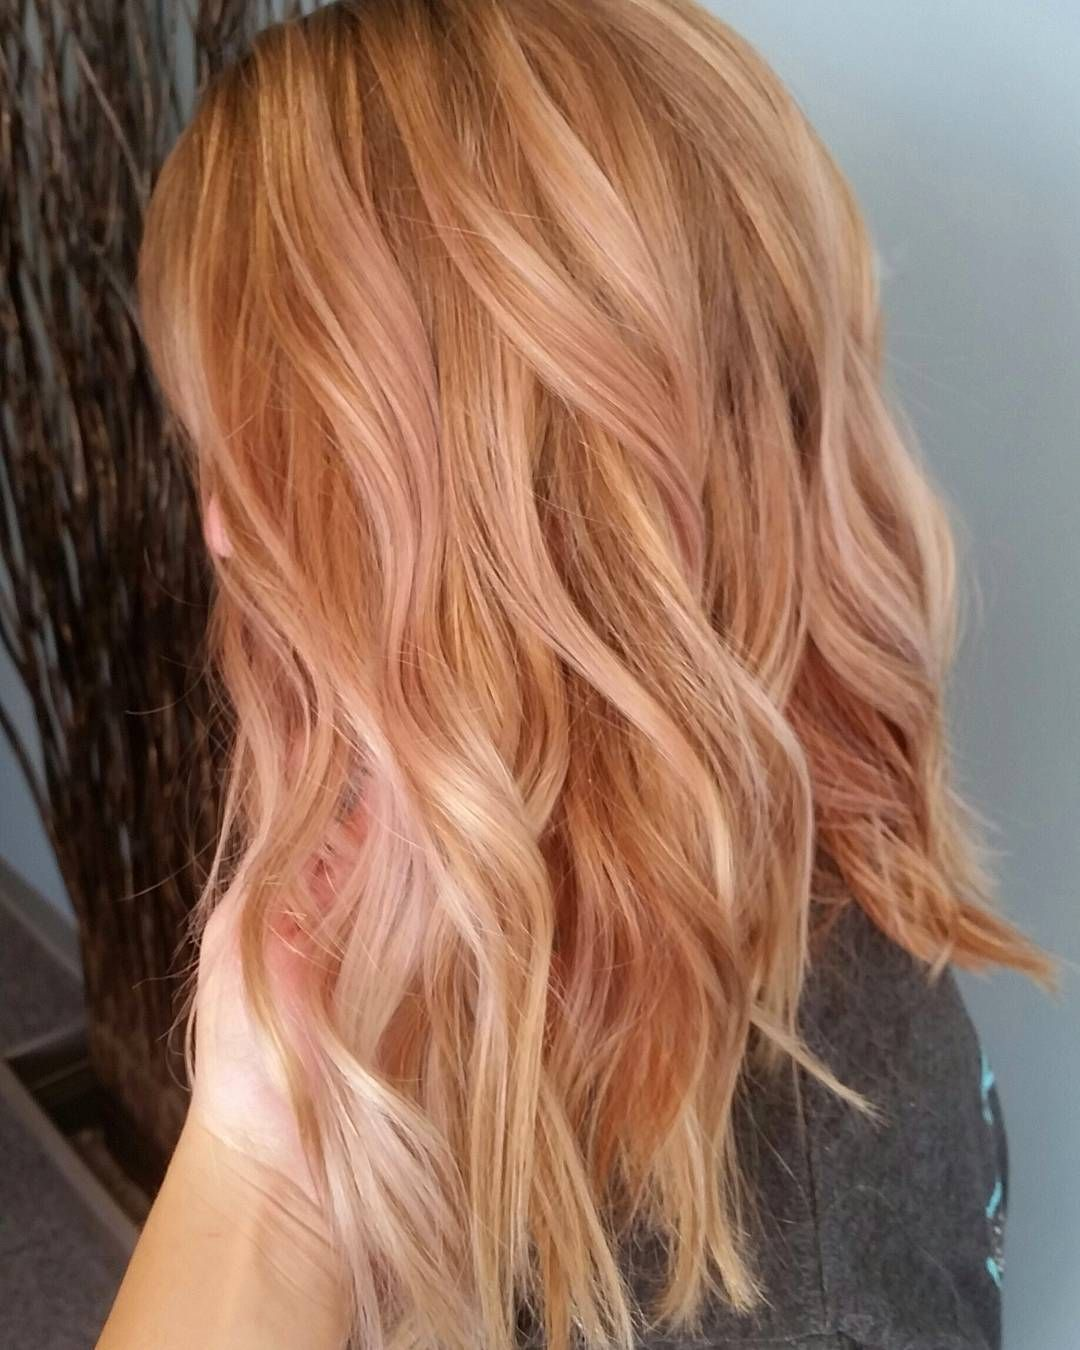 Rose Gold Blonde Is Going To Be The Trendiest Hair Colour For Autumn